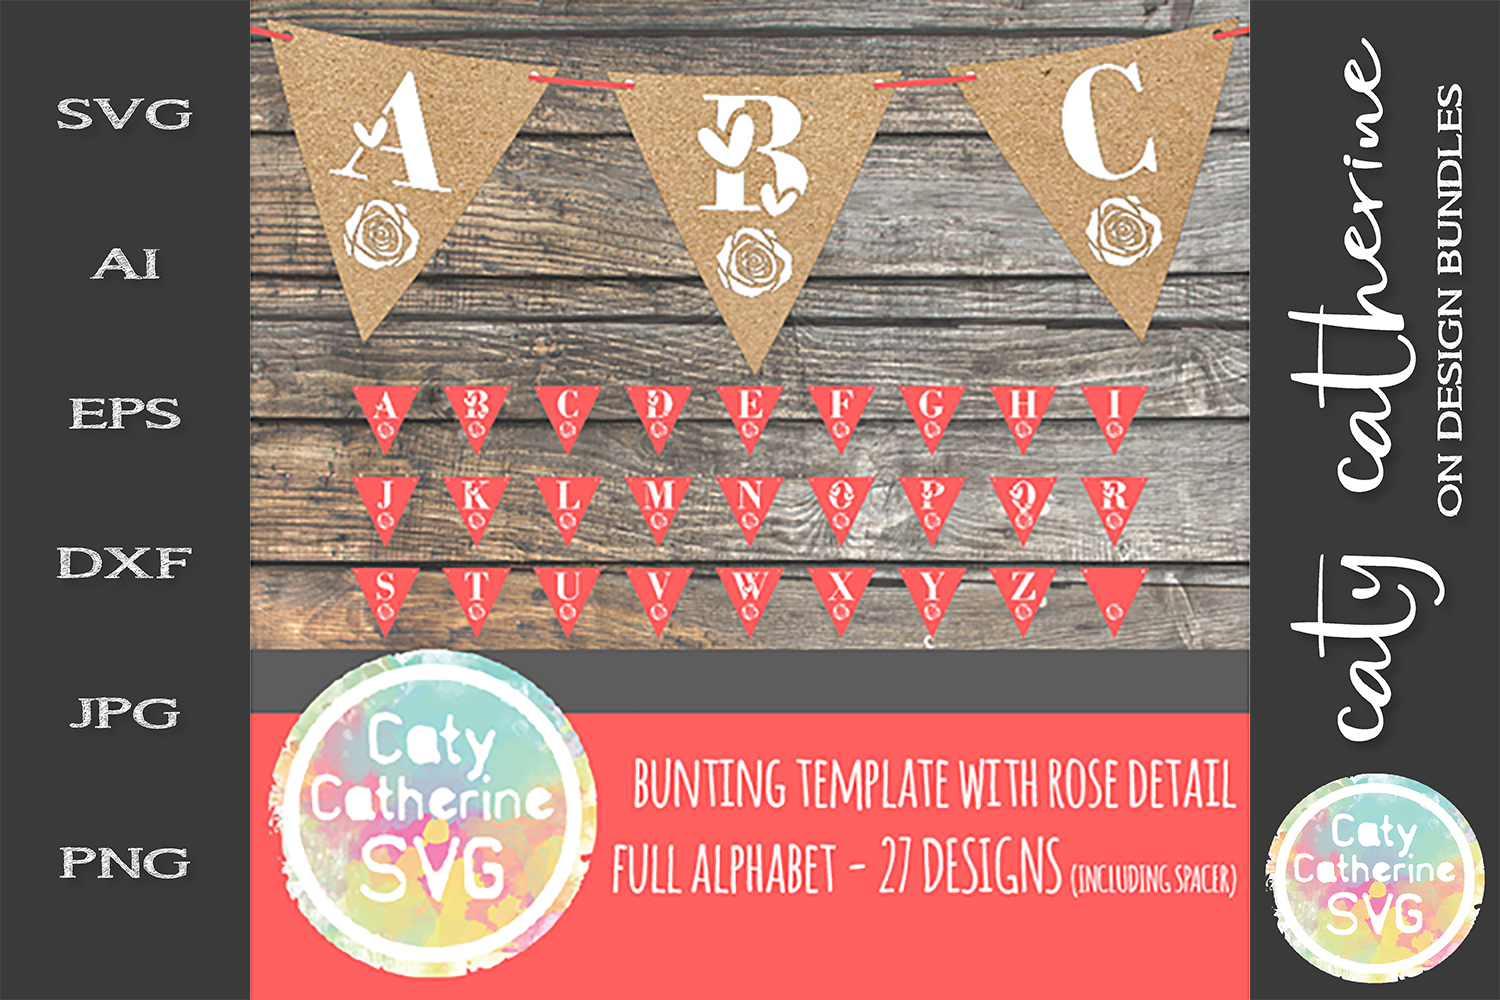 Bunting Template SVG with Rose Detail Full Alphabet A-Z example image 1